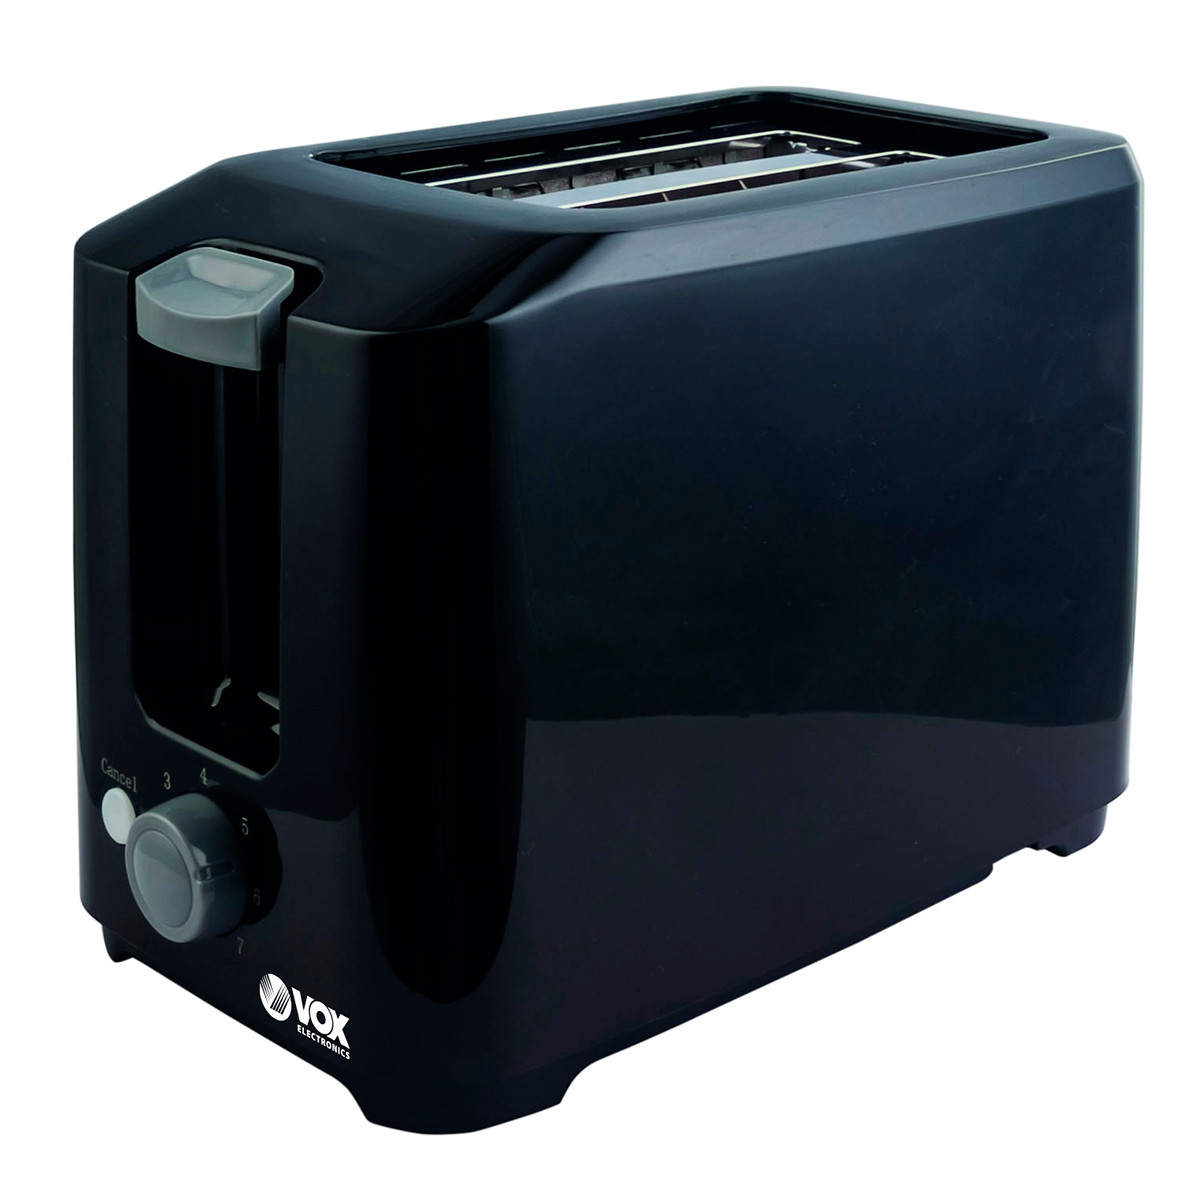 VOX TO 01102 TOSTER